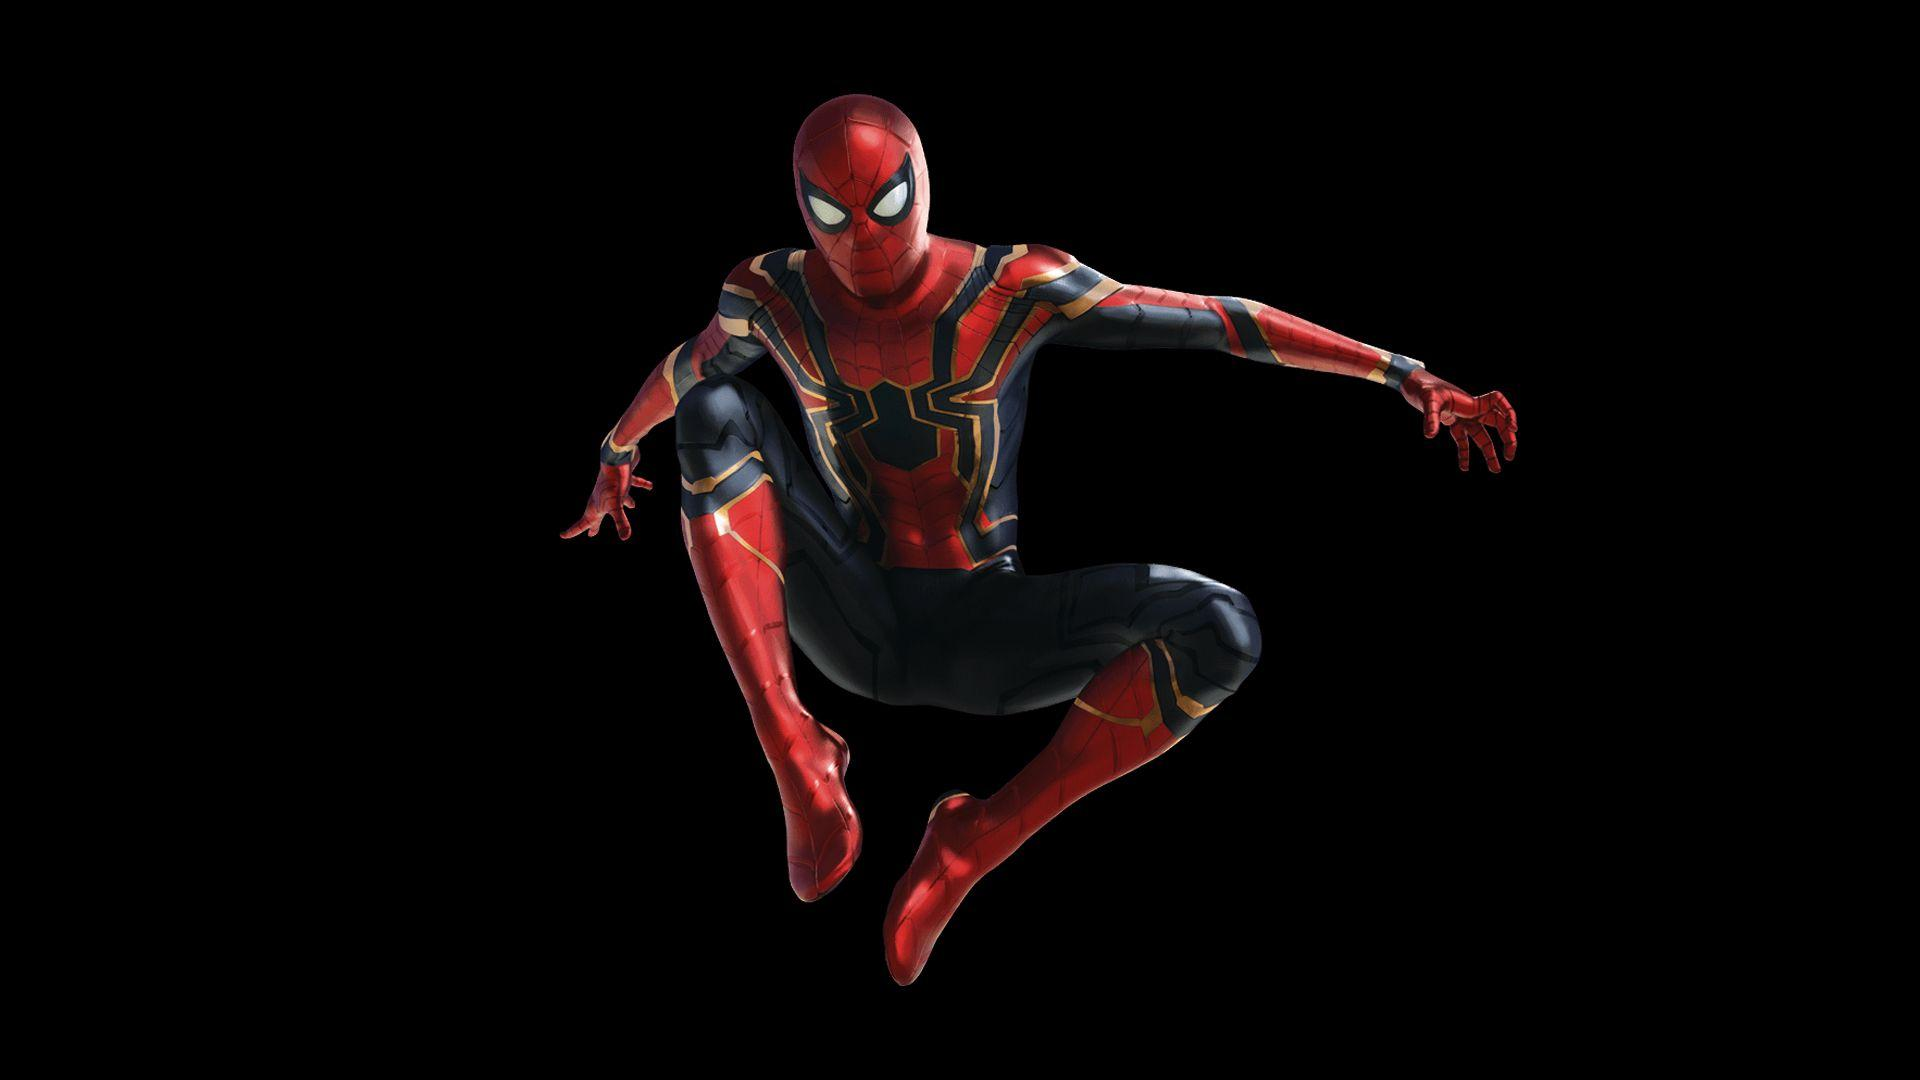 Great Spider Man Homecoming Infinity War Wallpaper - wp2685869  Perfect Image Reference_817632 .jpg